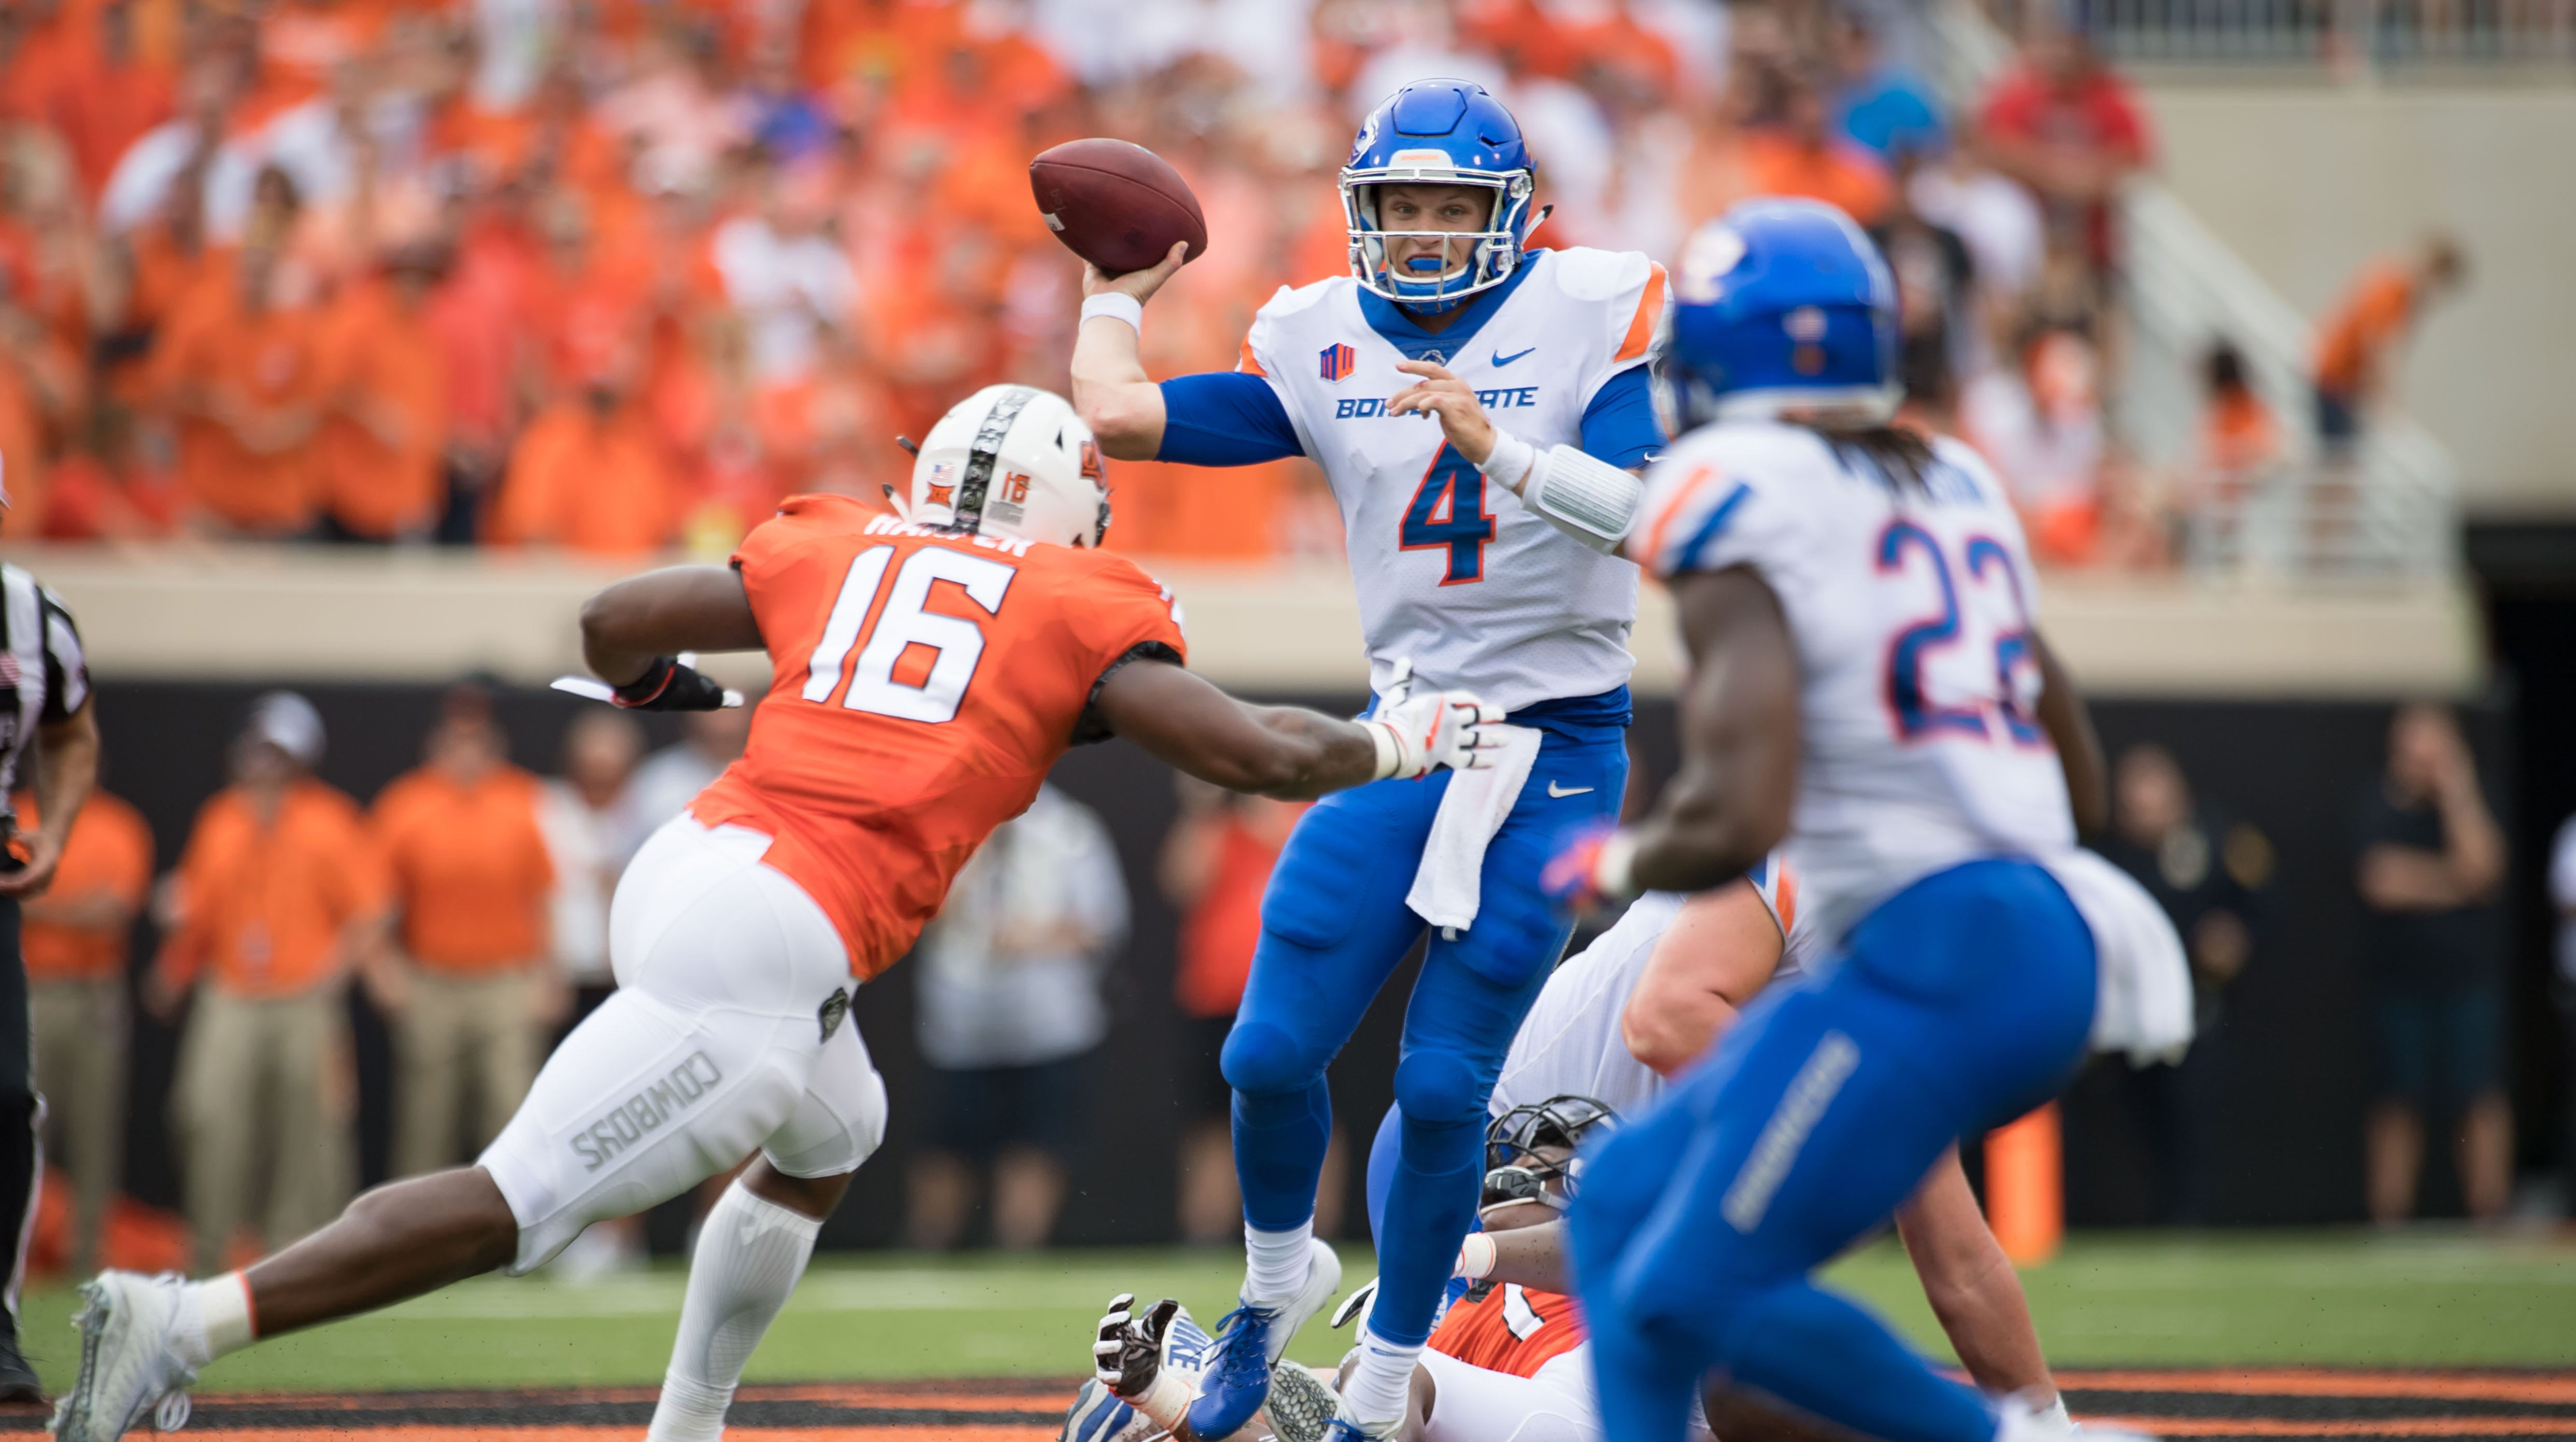 Sep 15, 2018; Stillwater, OK, USA; Boise State Broncos quarterback Brett Rypien (4) drops back to pass while defended by Oklahoma State Cowboys linebacker Devin Harper (16) during the first half at Boone Pickens Stadium. Mandatory Credit: Rob Ferguson-USA TODAY Sports